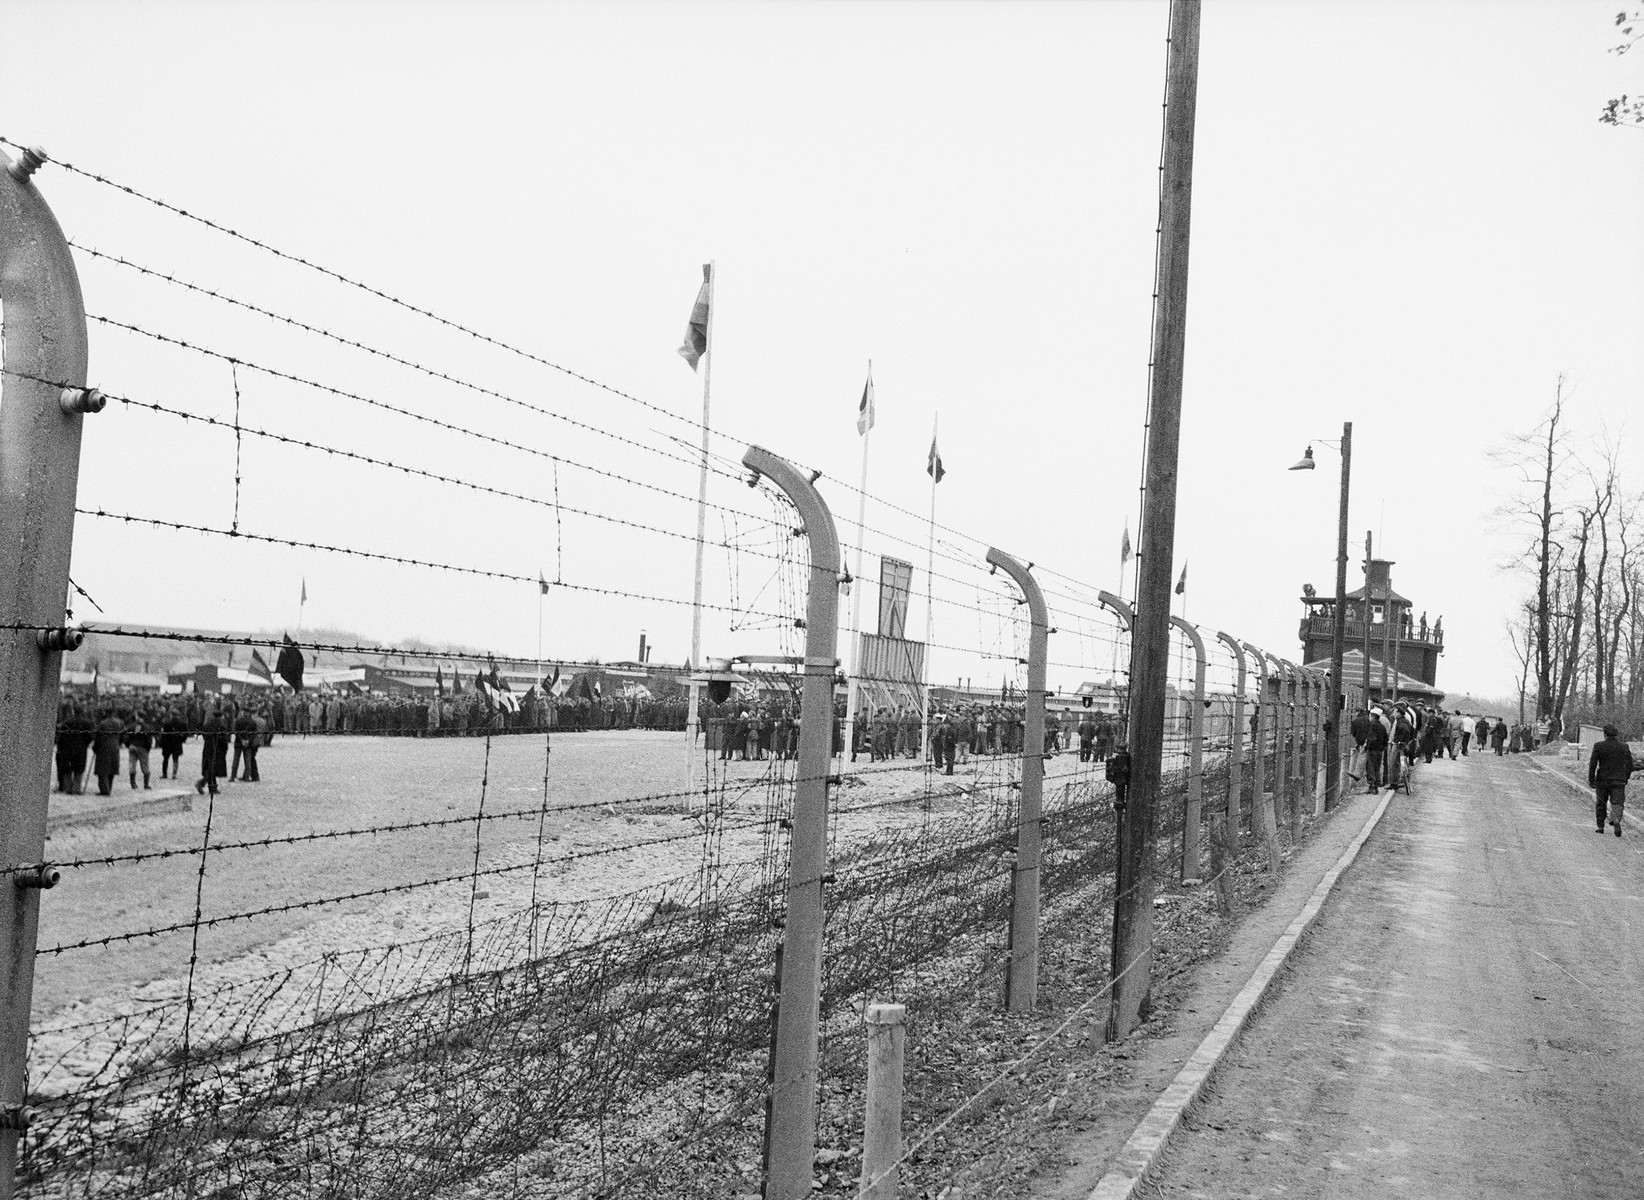 Long view of the electrified barbed wire fences at Buchenwald.